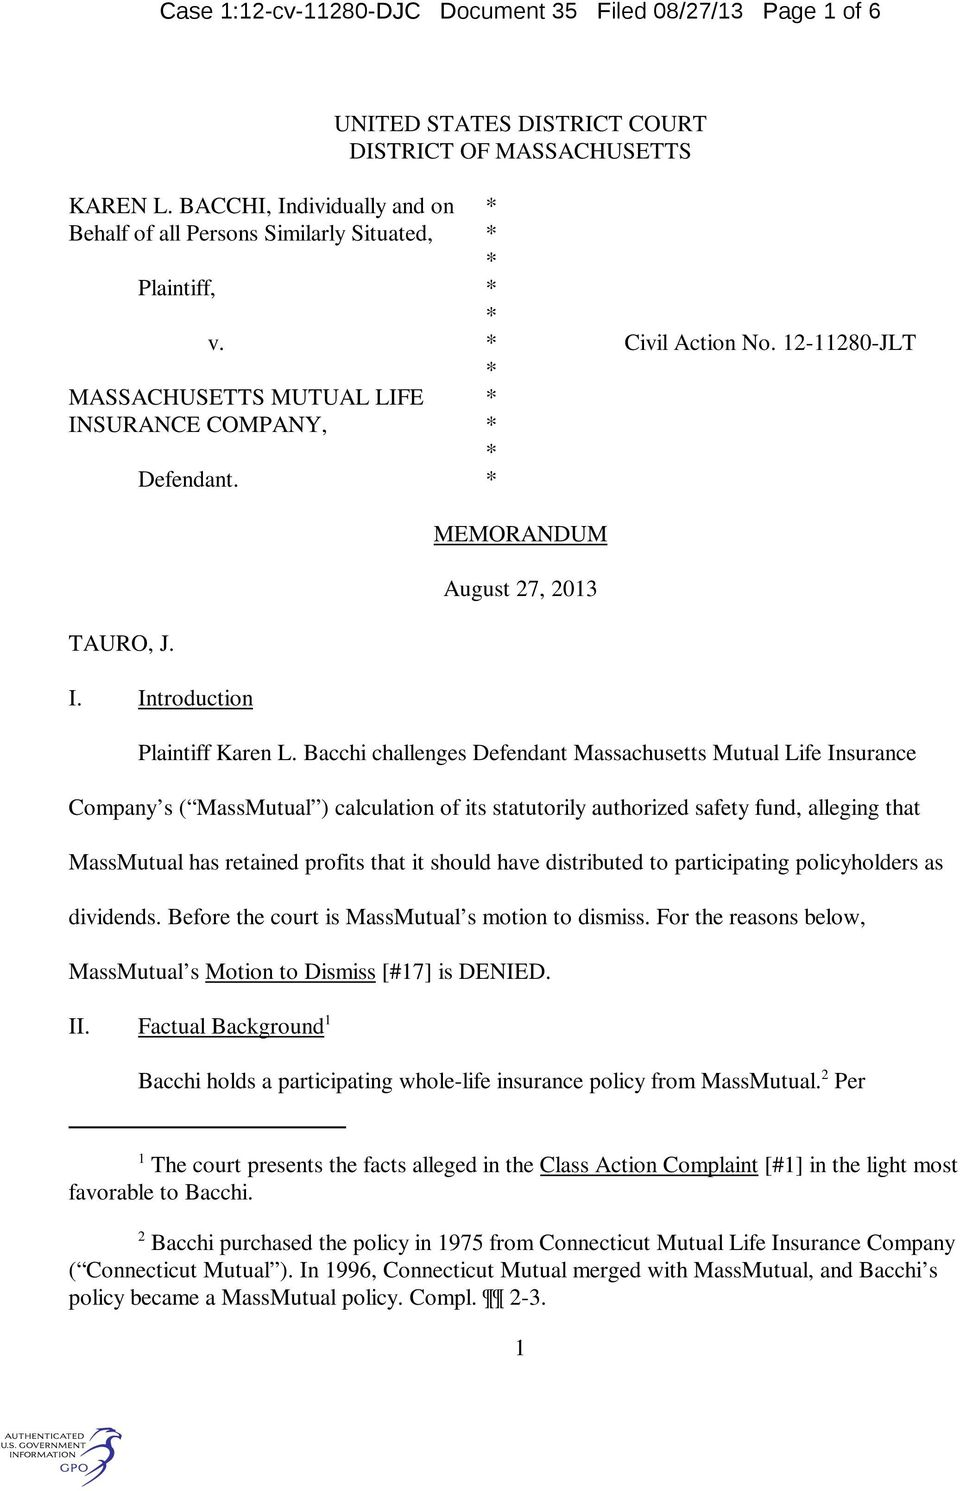 Bacchi challenges Defendant Massachusetts Mutual Life Insurance Company s ( MassMutual ) calculation of its statutorily authorized safety fund, alleging that MassMutual has retained profits that it